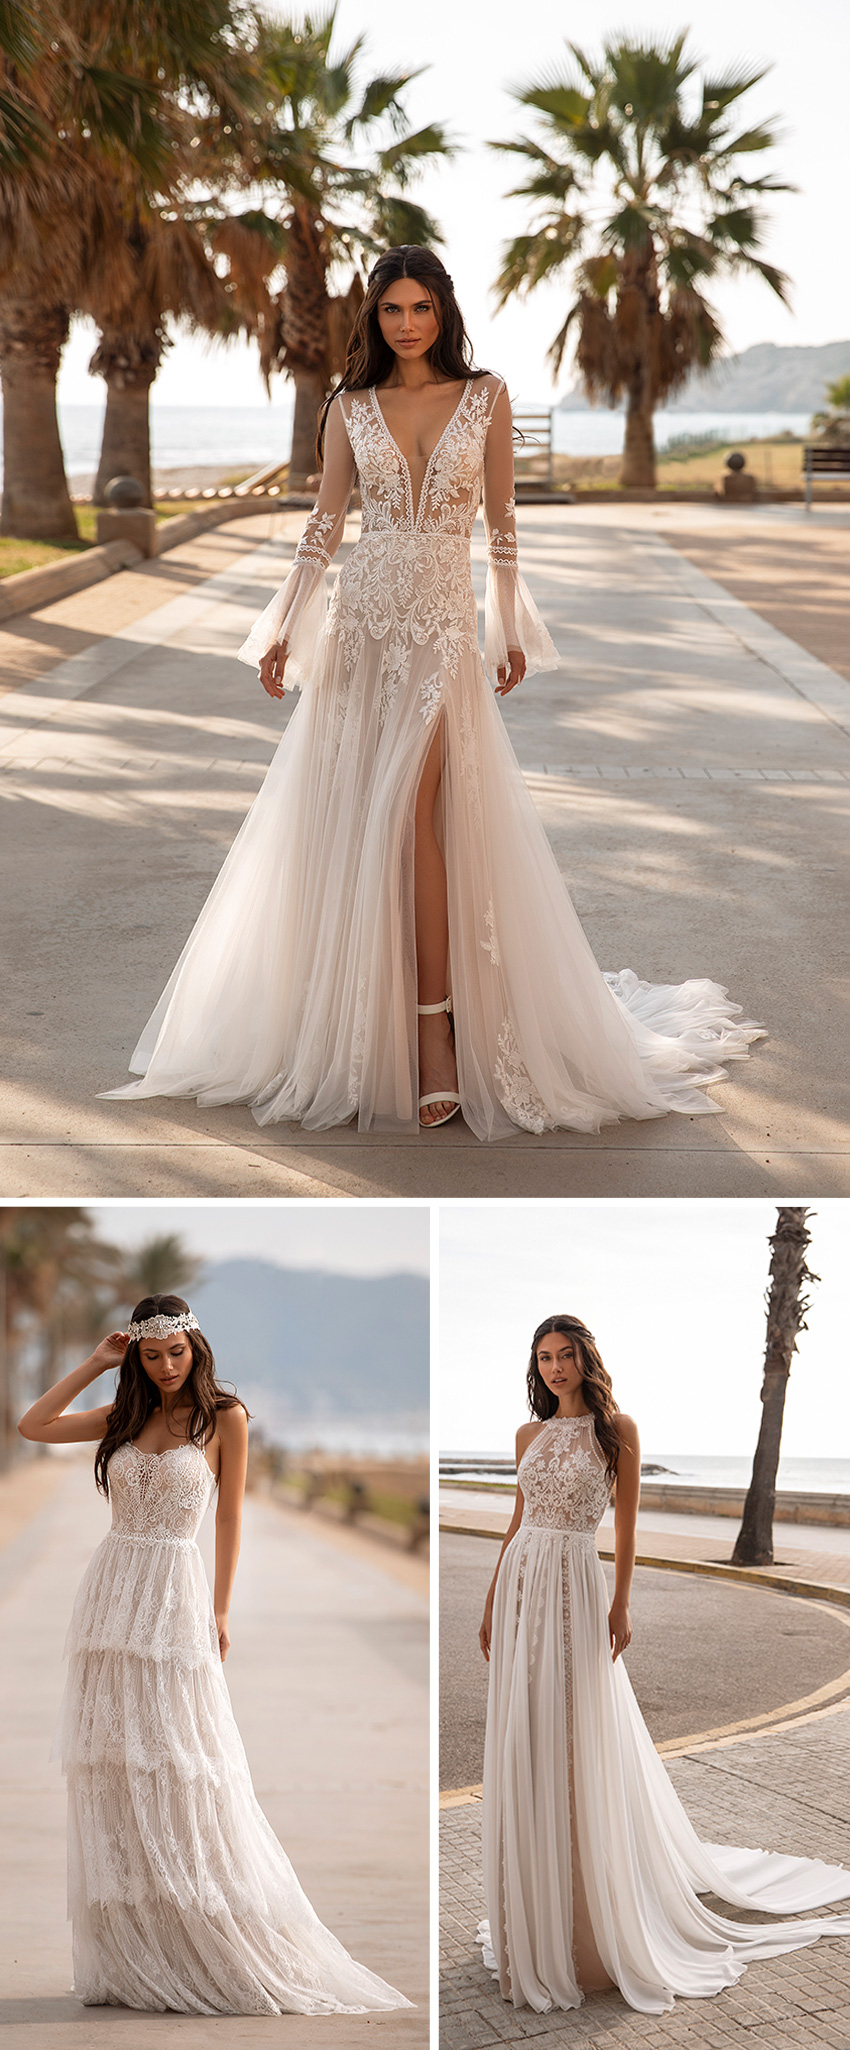 Pronovias 2021 Cruise collection dresses in Guipure and tulle with floral lace Perfect Wedding Magazine